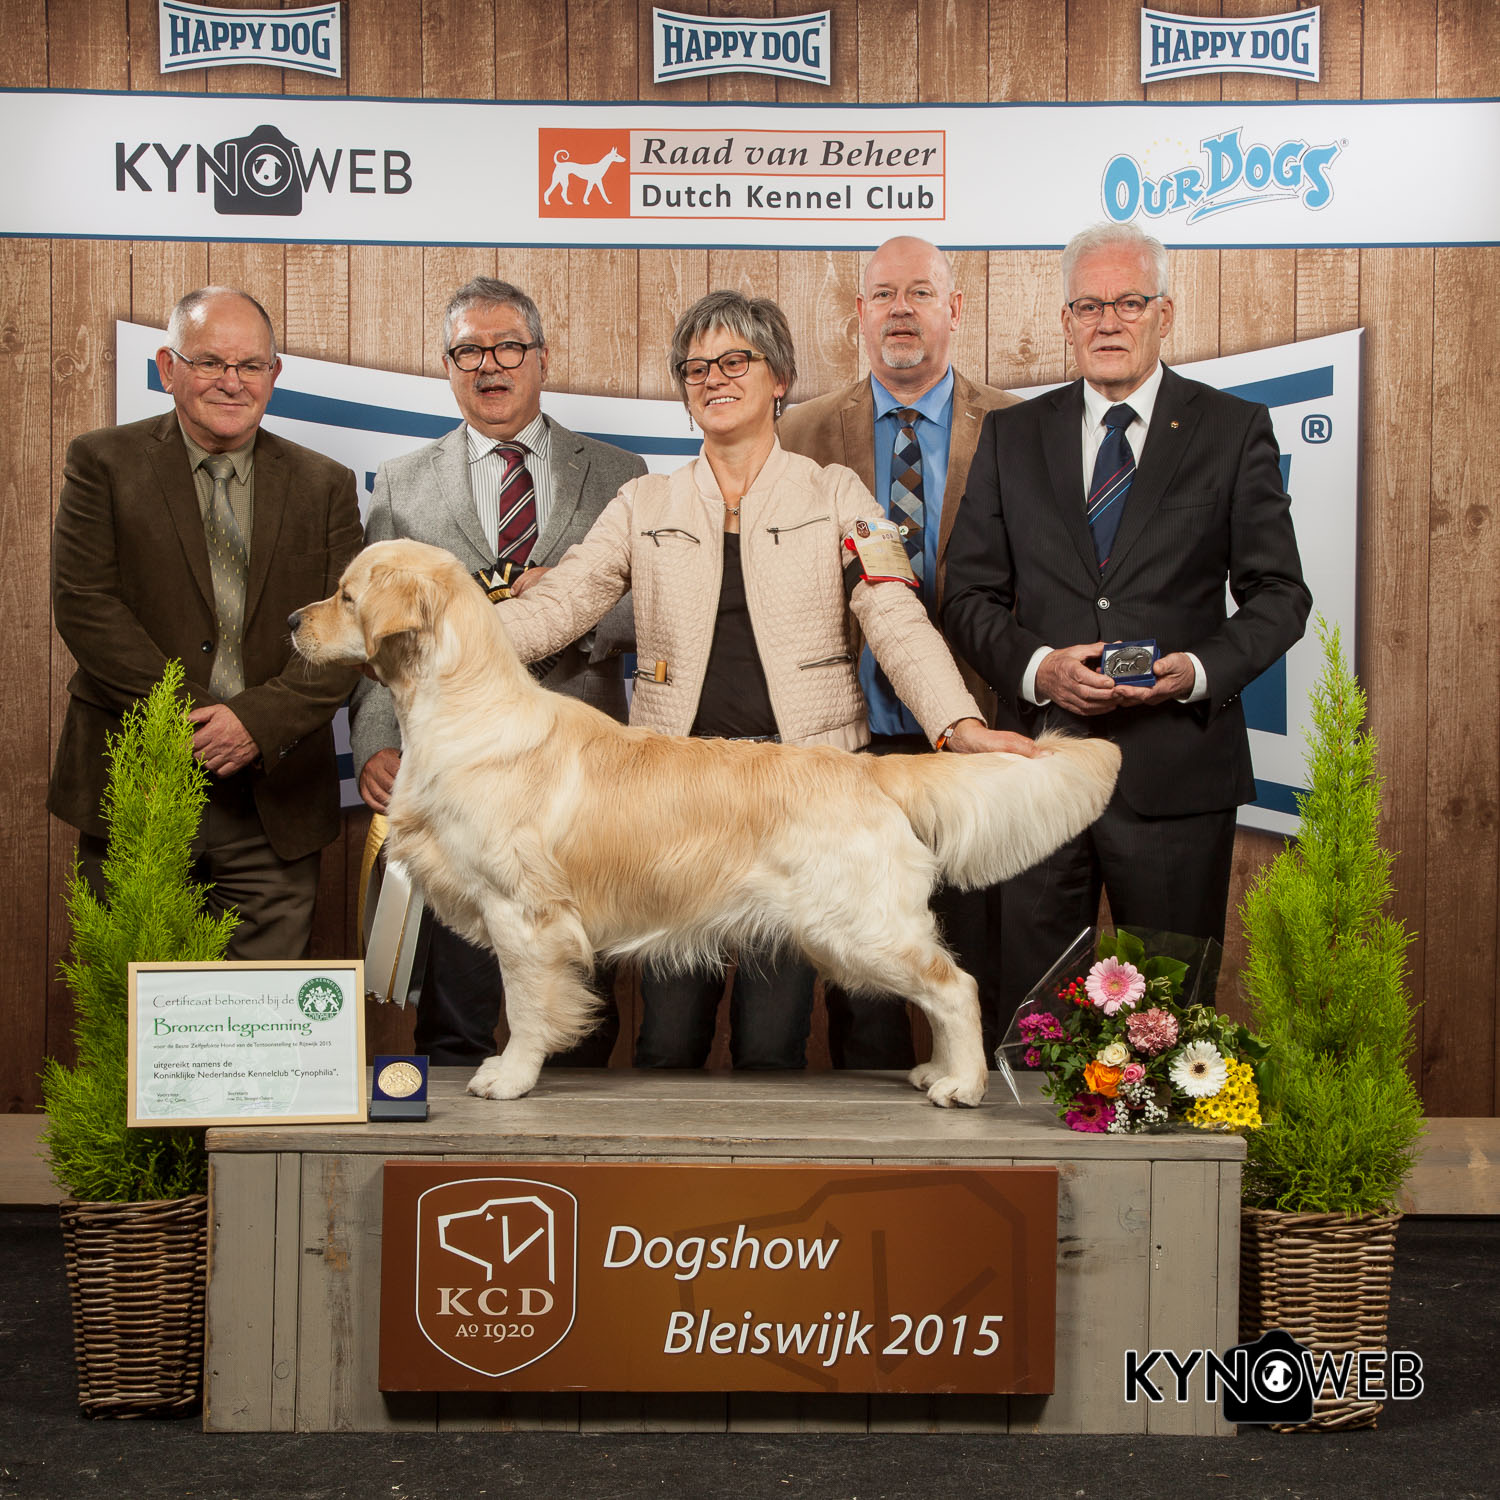 Best in Show (BIS) - Winners of the International Dog Show in Bleiswijk (Netherlands), Sunday, 8 November 2015 (BIS photo)